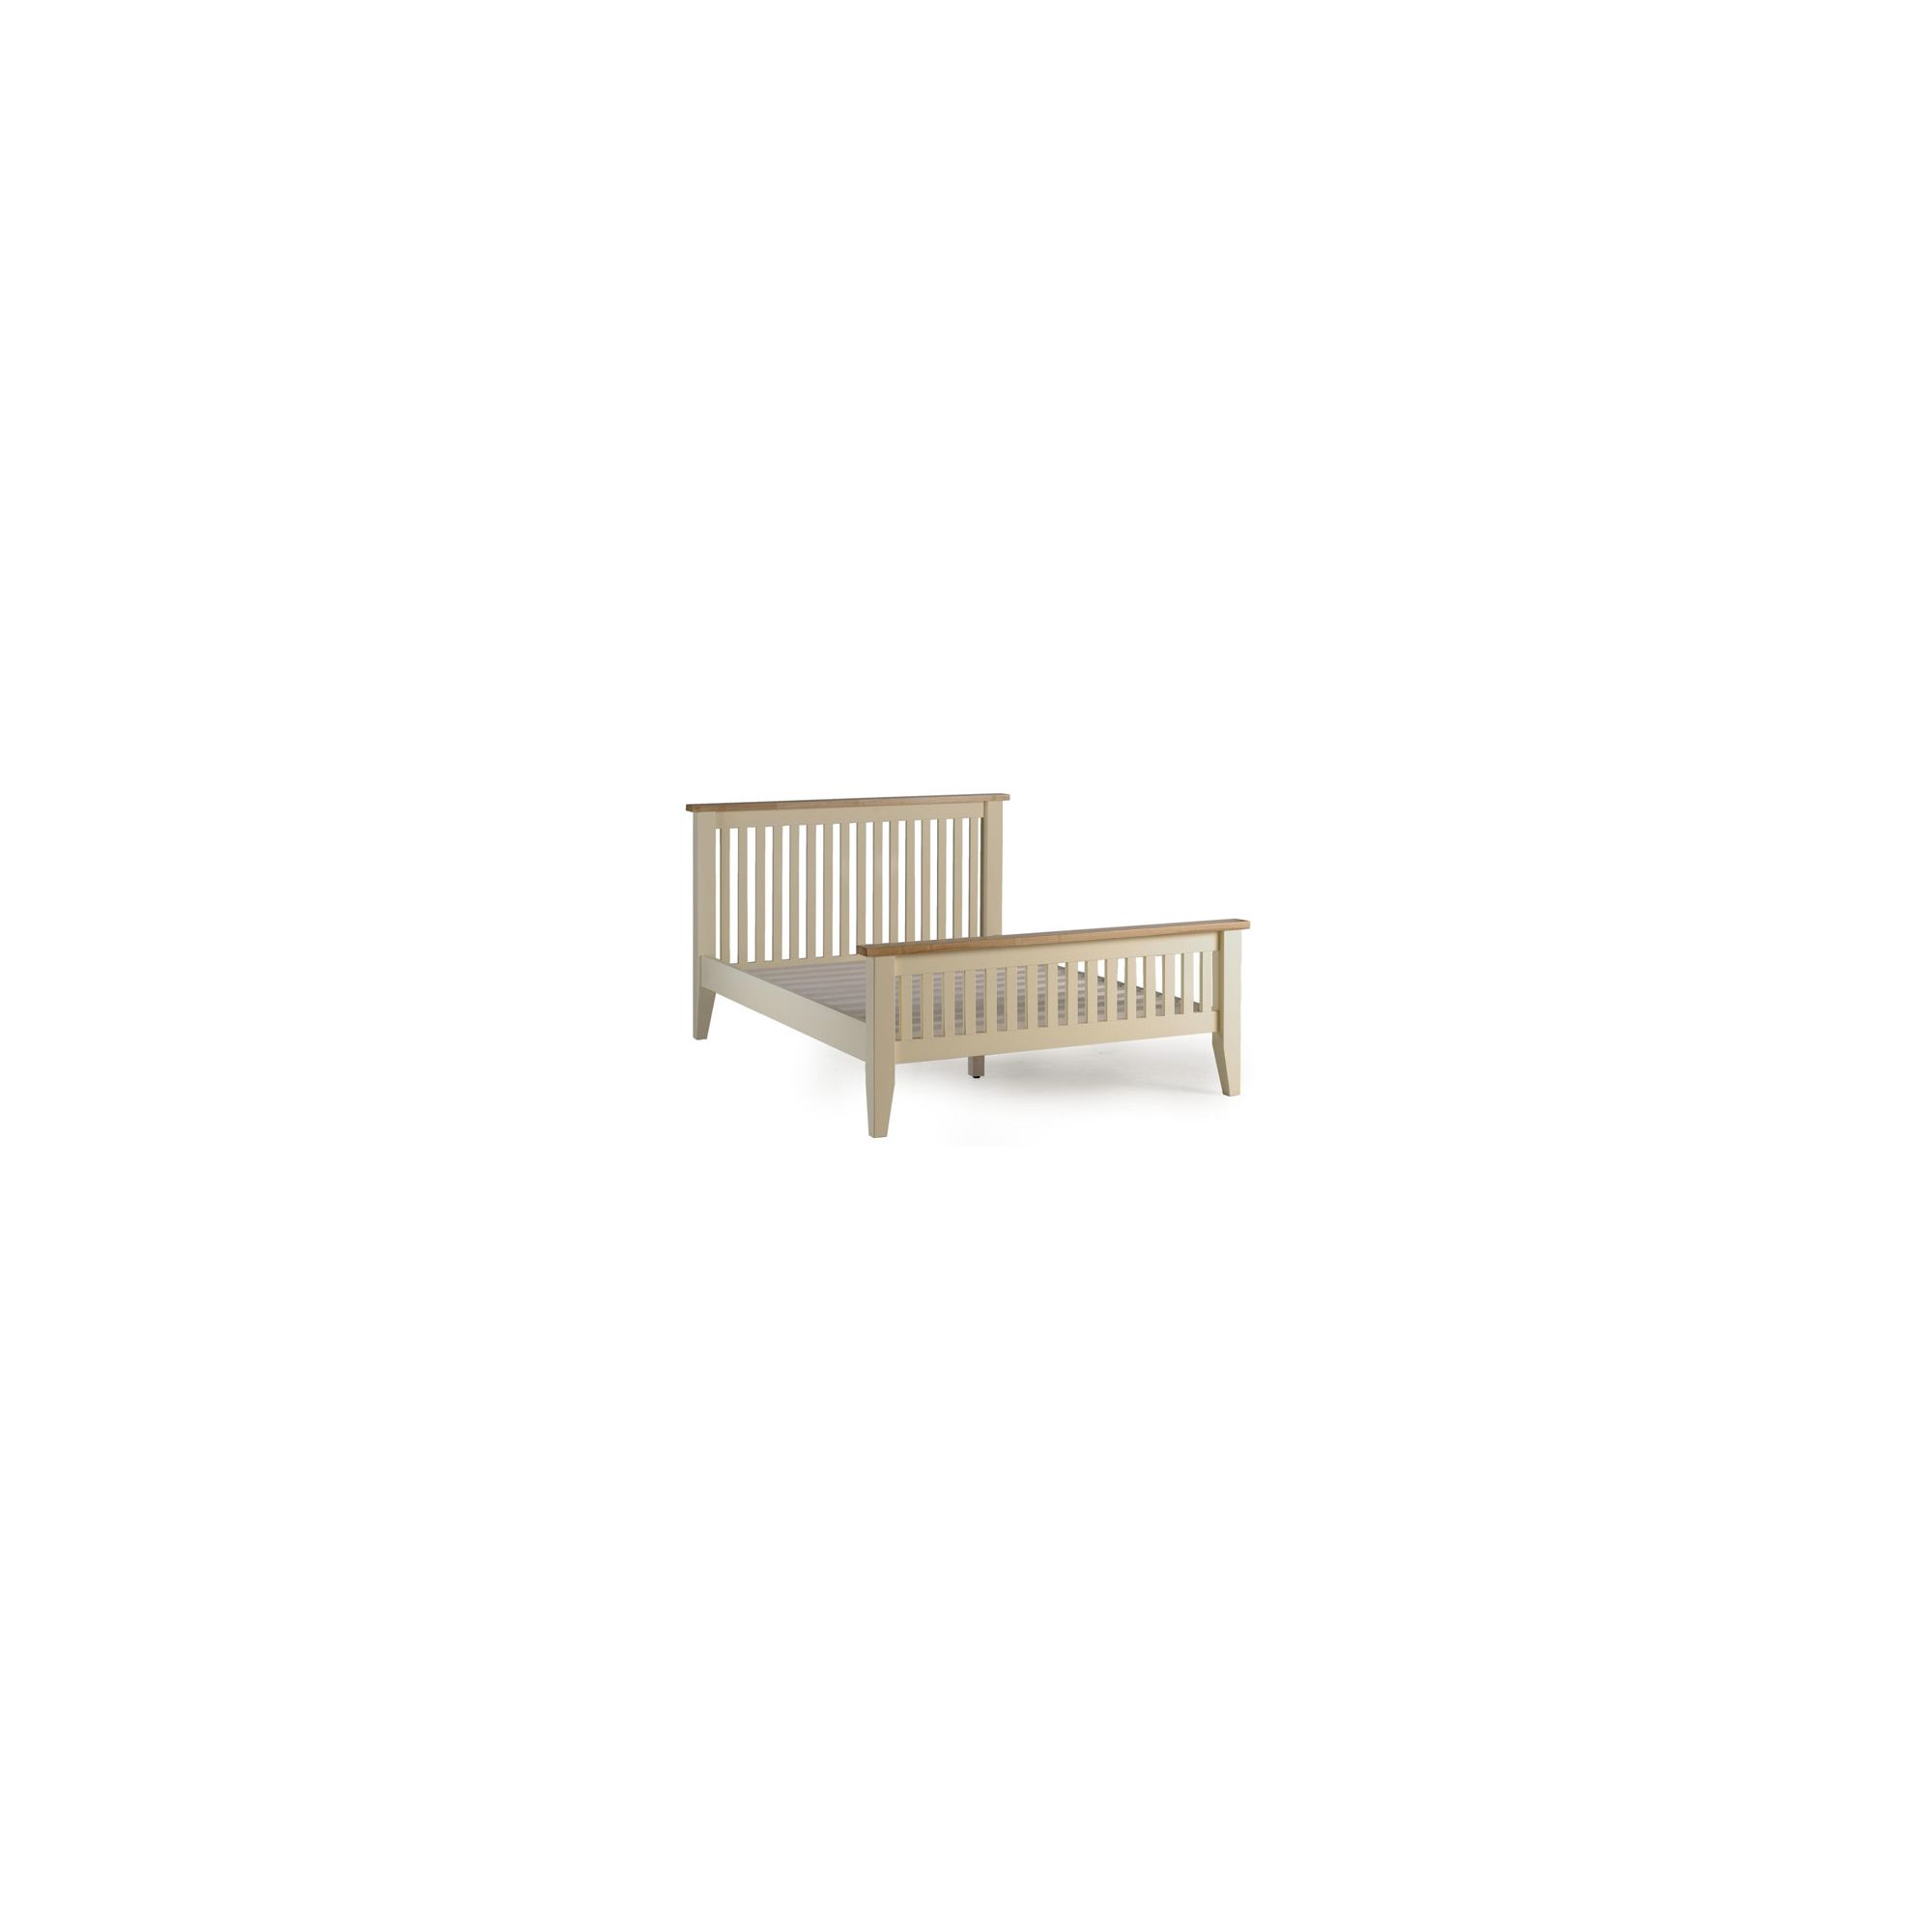 Ametis Camden Painted Bed Frame - Double at Tesco Direct